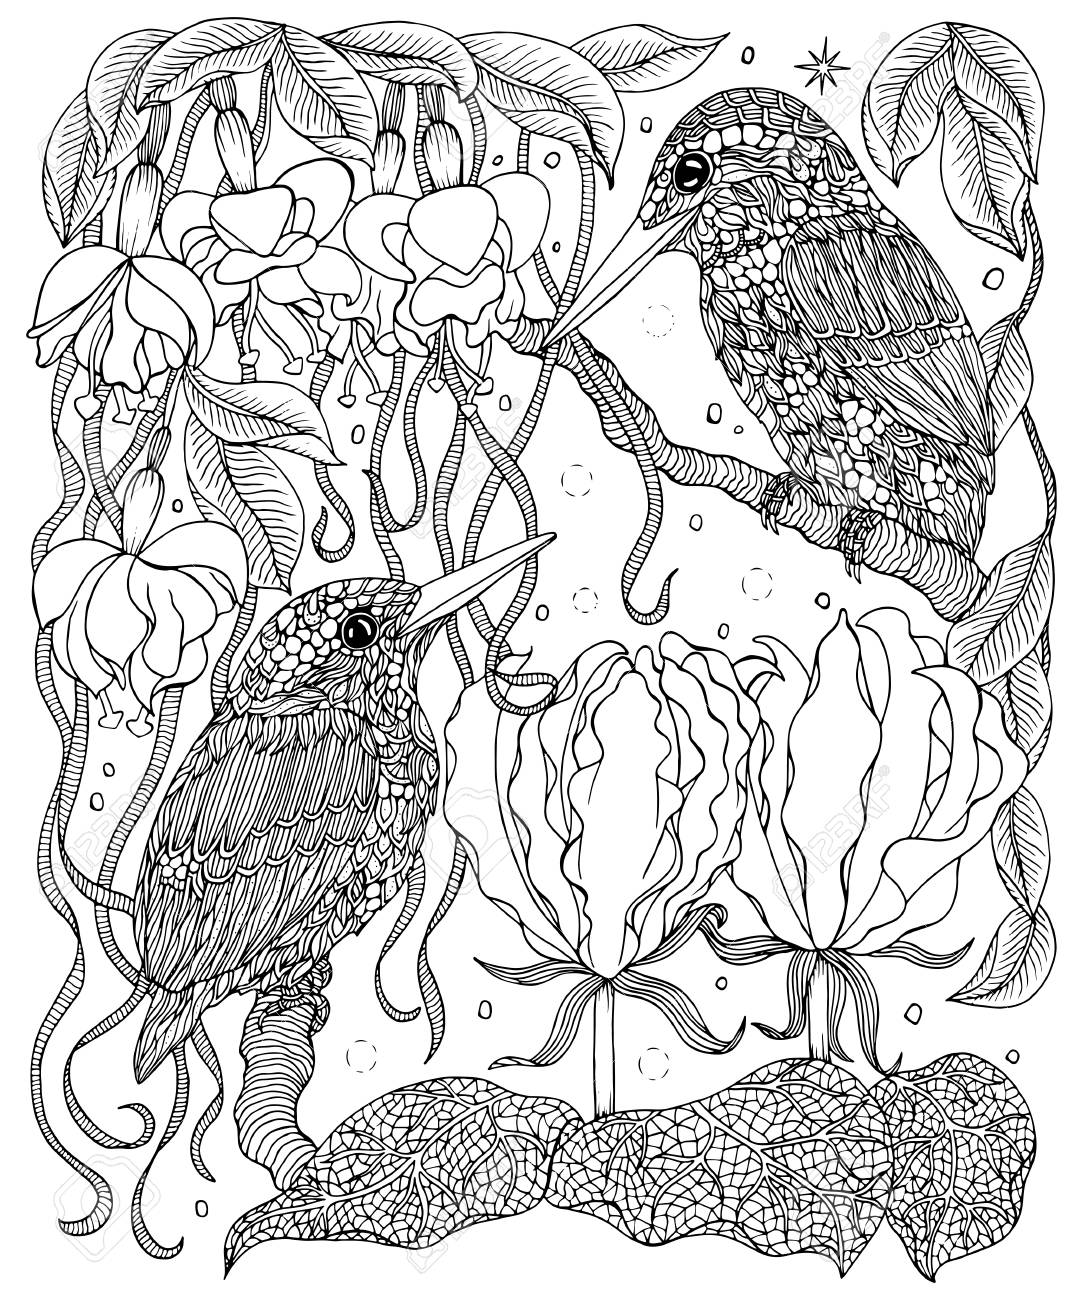 Birds And Flowers Coloring Page Kingfishers Vector Illustration Royalty Free Cliparts Vectors And Stock Illustration Image 90954208